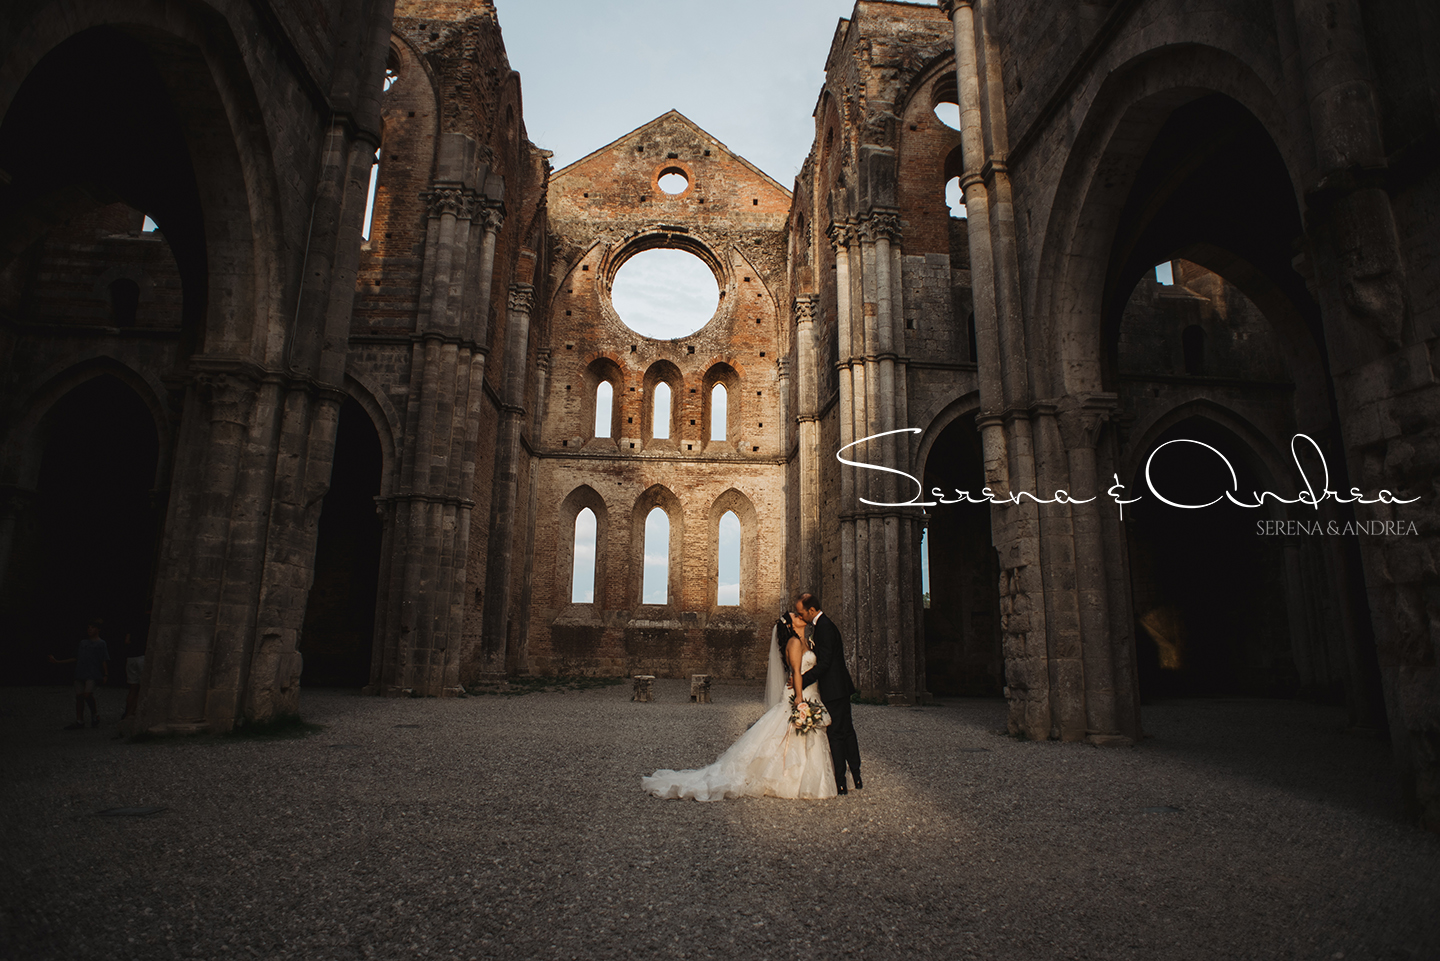 Get Married at San Galgano Abbey, Marco Vegni Wedding Photographer Siena